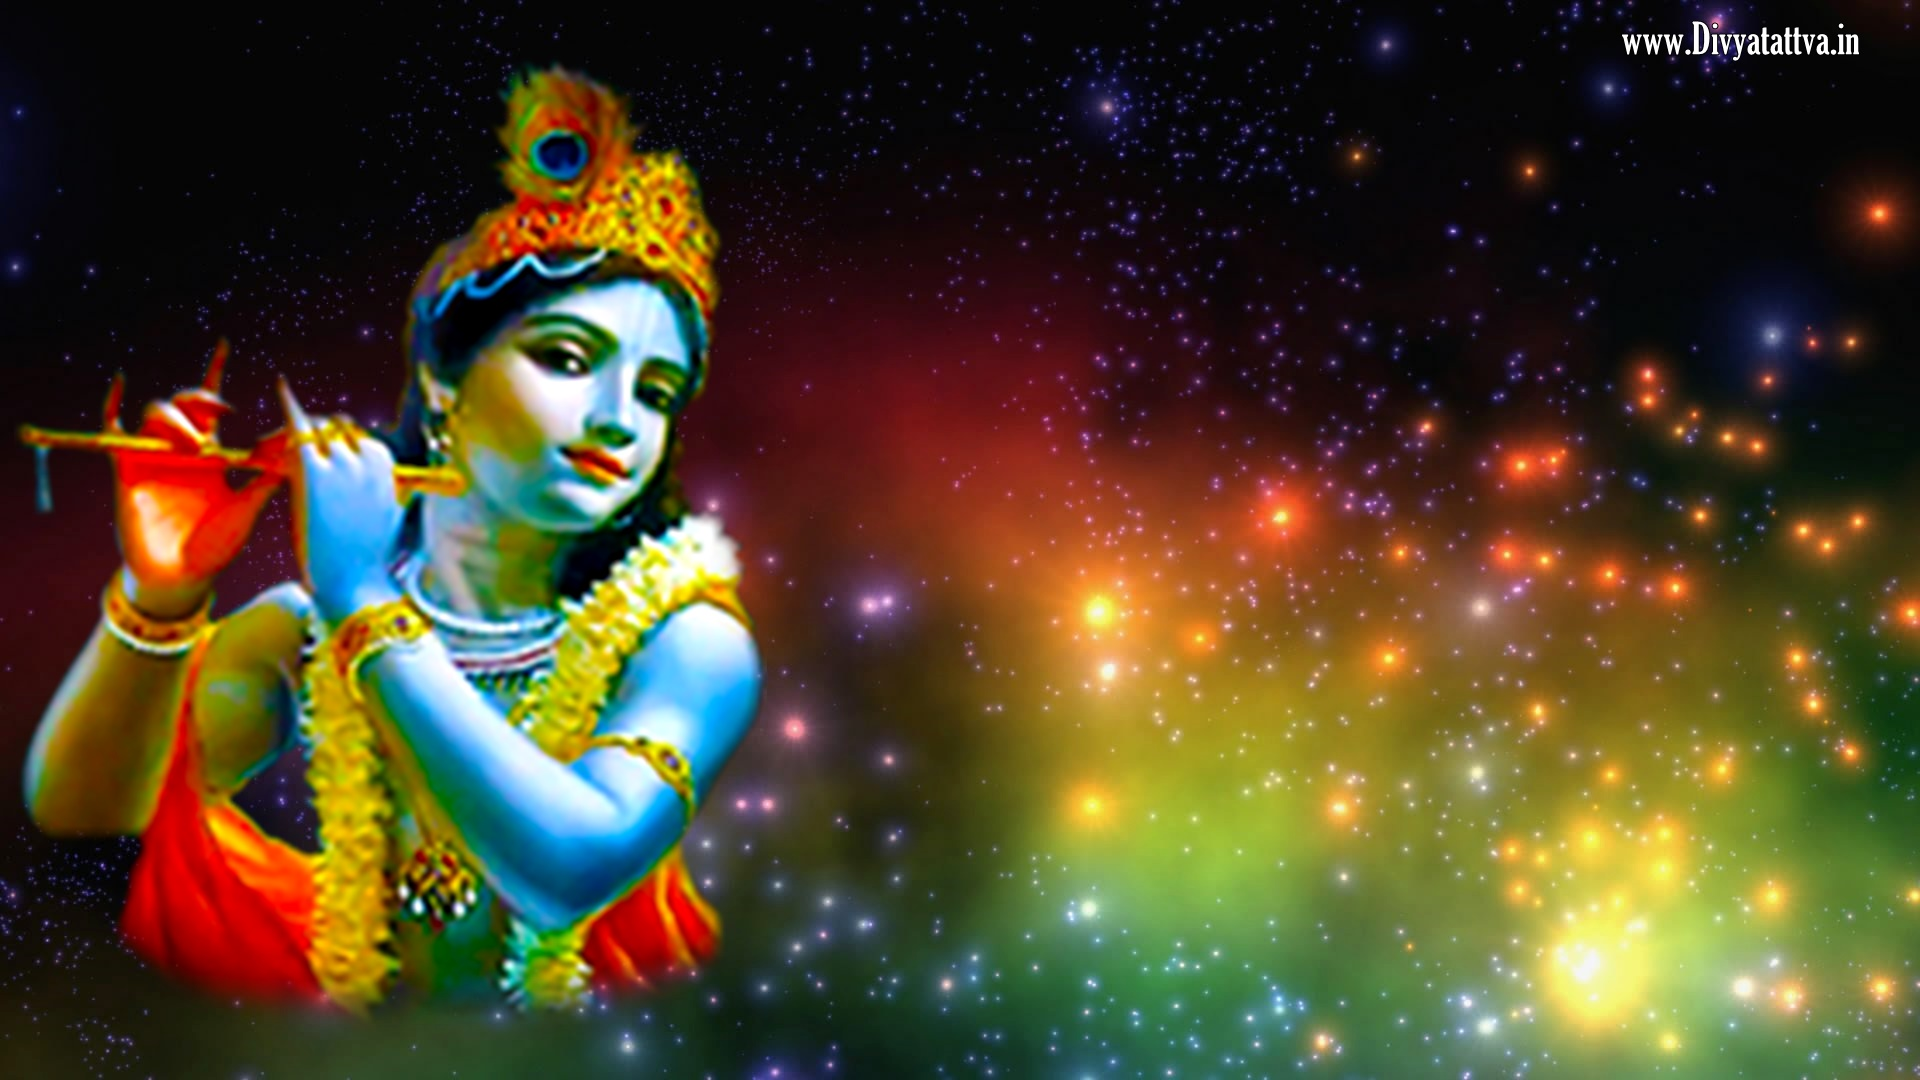 Lord Krishna Hd Wallpaper Full Size Festival Of Janmashtami Radha Krishna Pictures Hindu God Pictures And Backgrounds Free Download